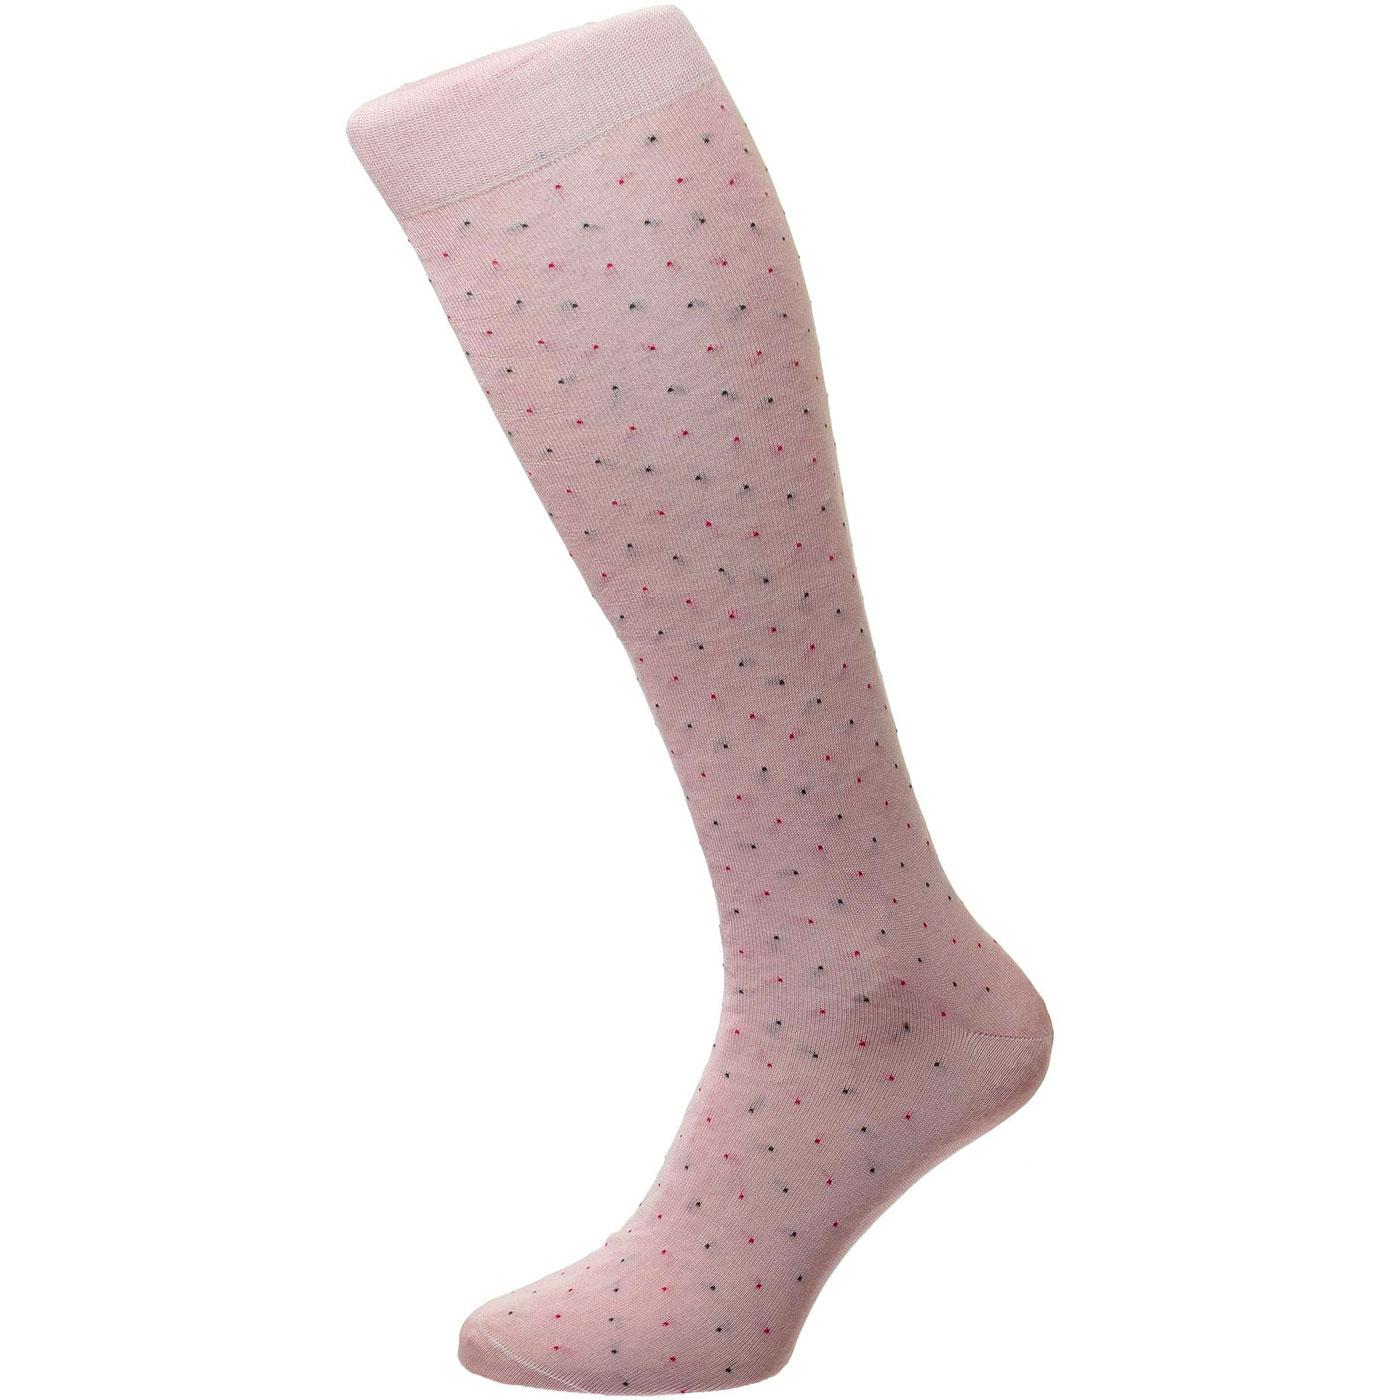 + Regent PANTHERELLA Pin Dot Fil d'Ecosse Socks